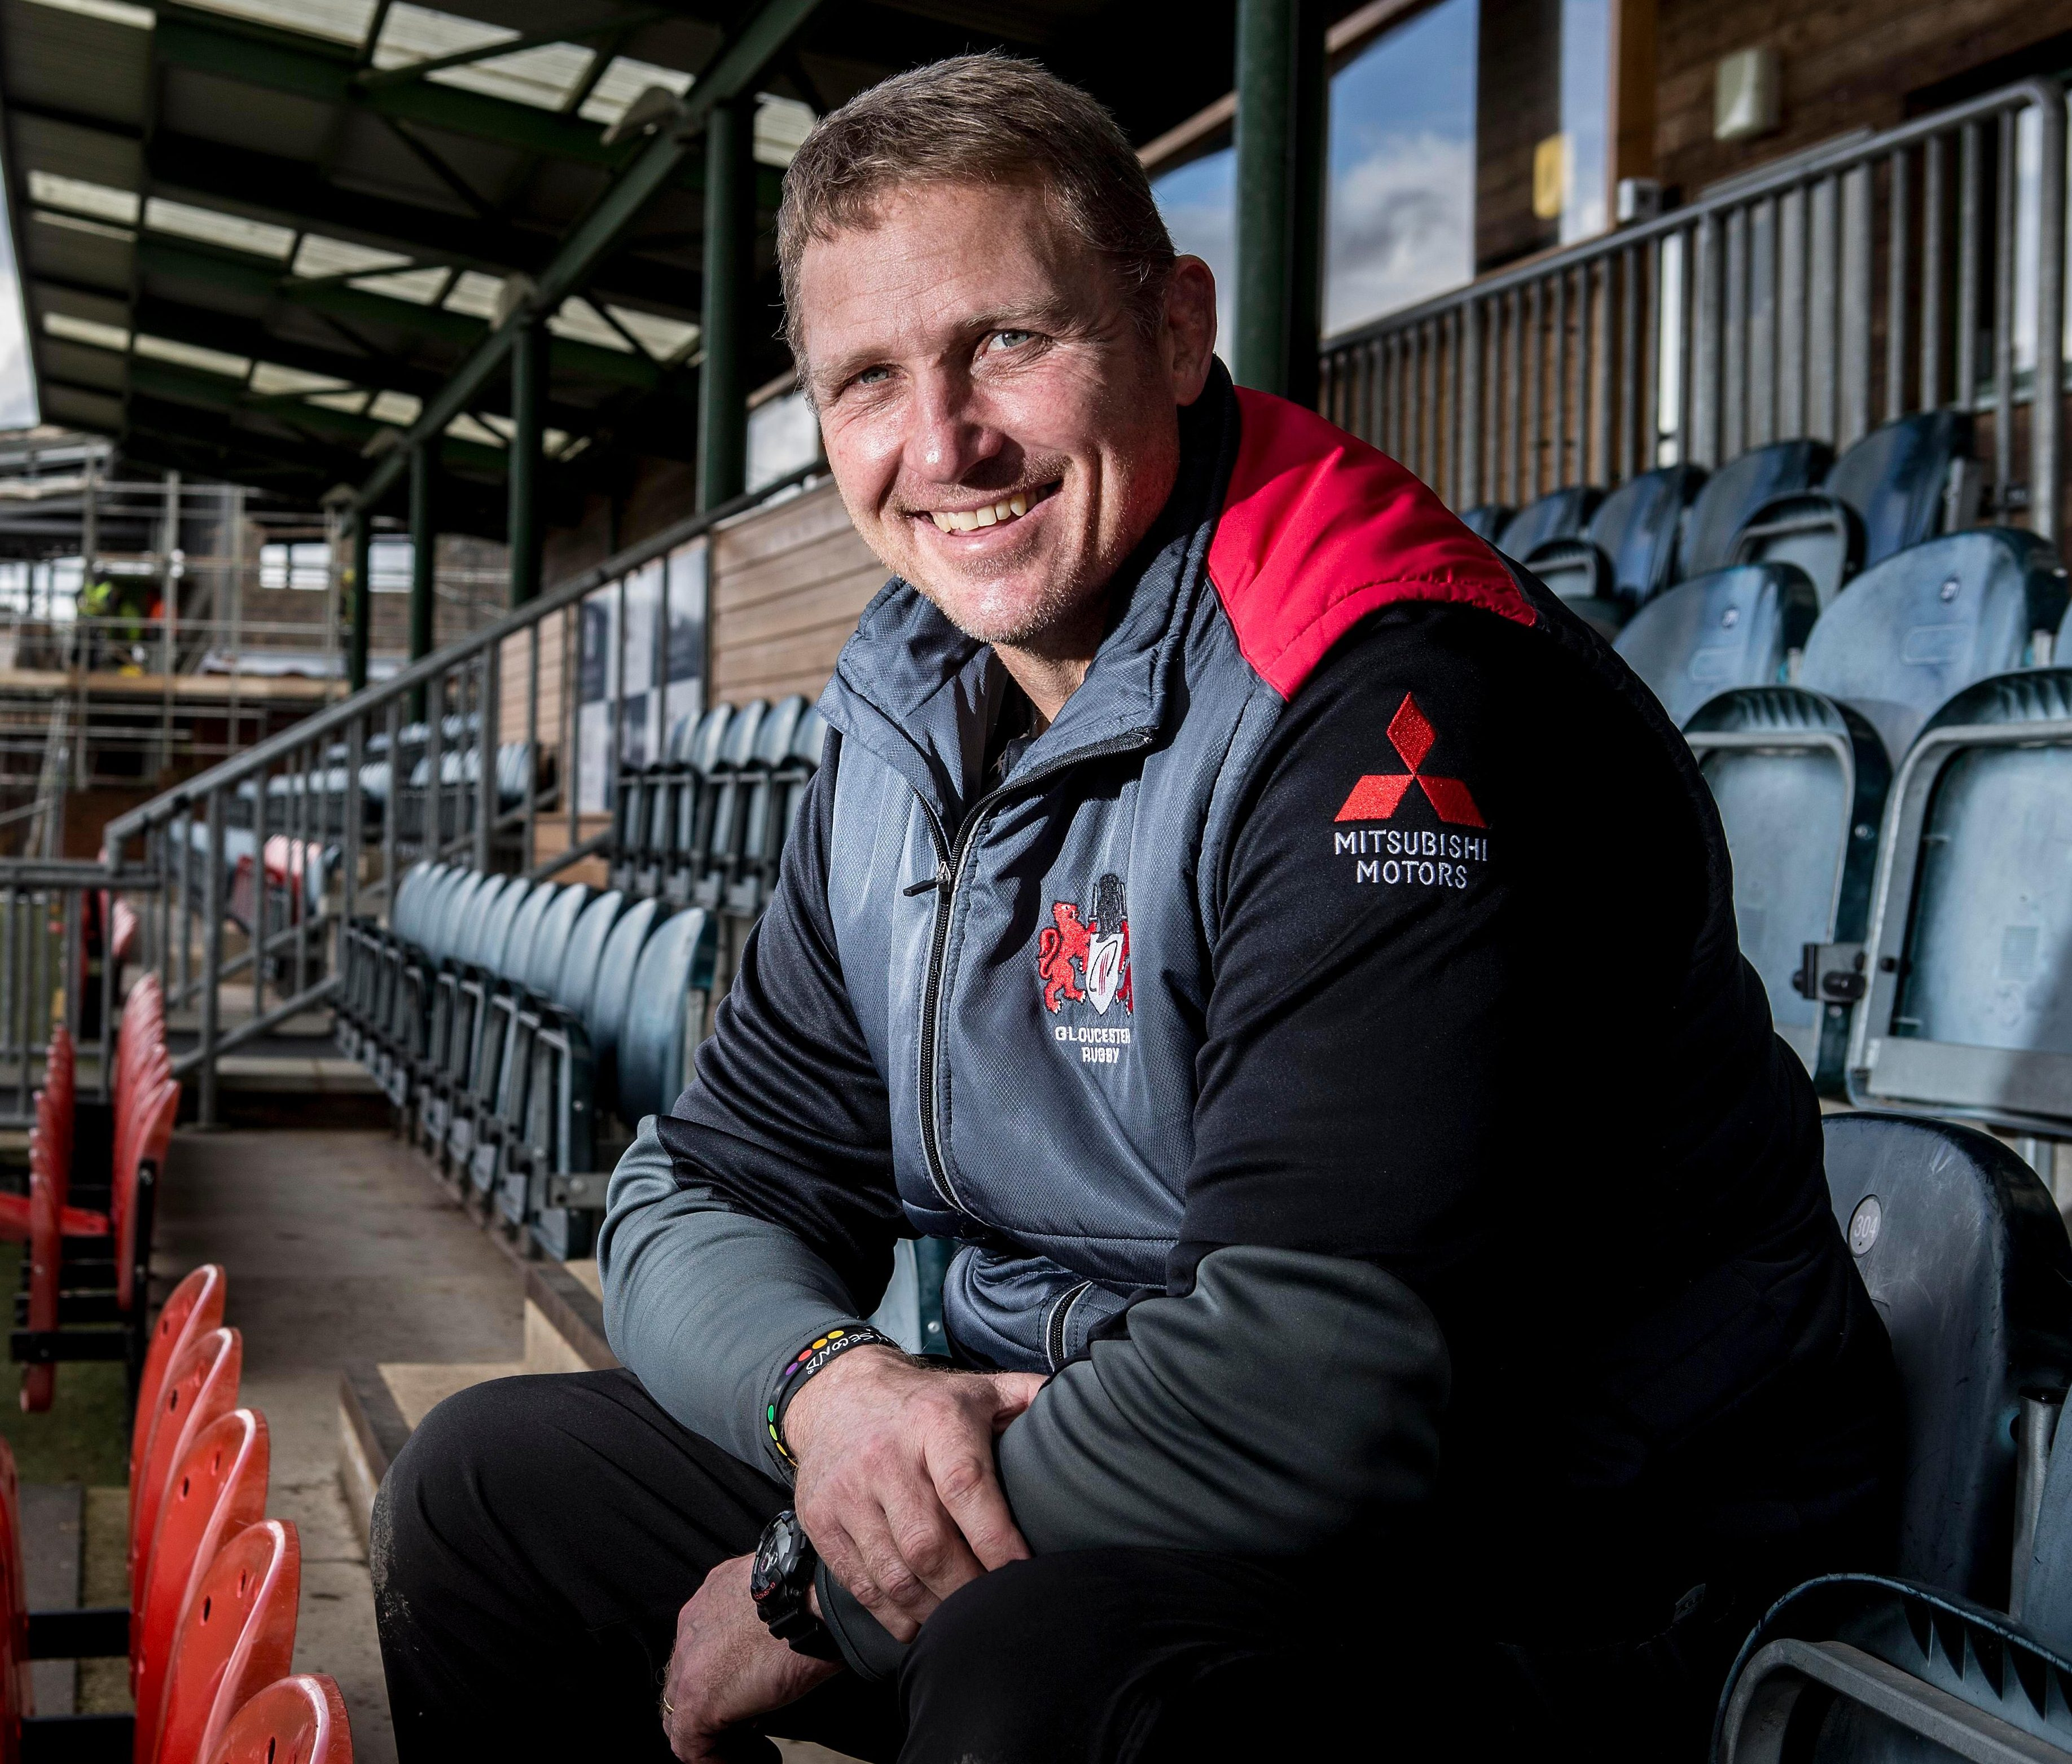 Johan Ackermann has had a difficult journey to the top, but is on the cusp of getting silverware with Gloucester